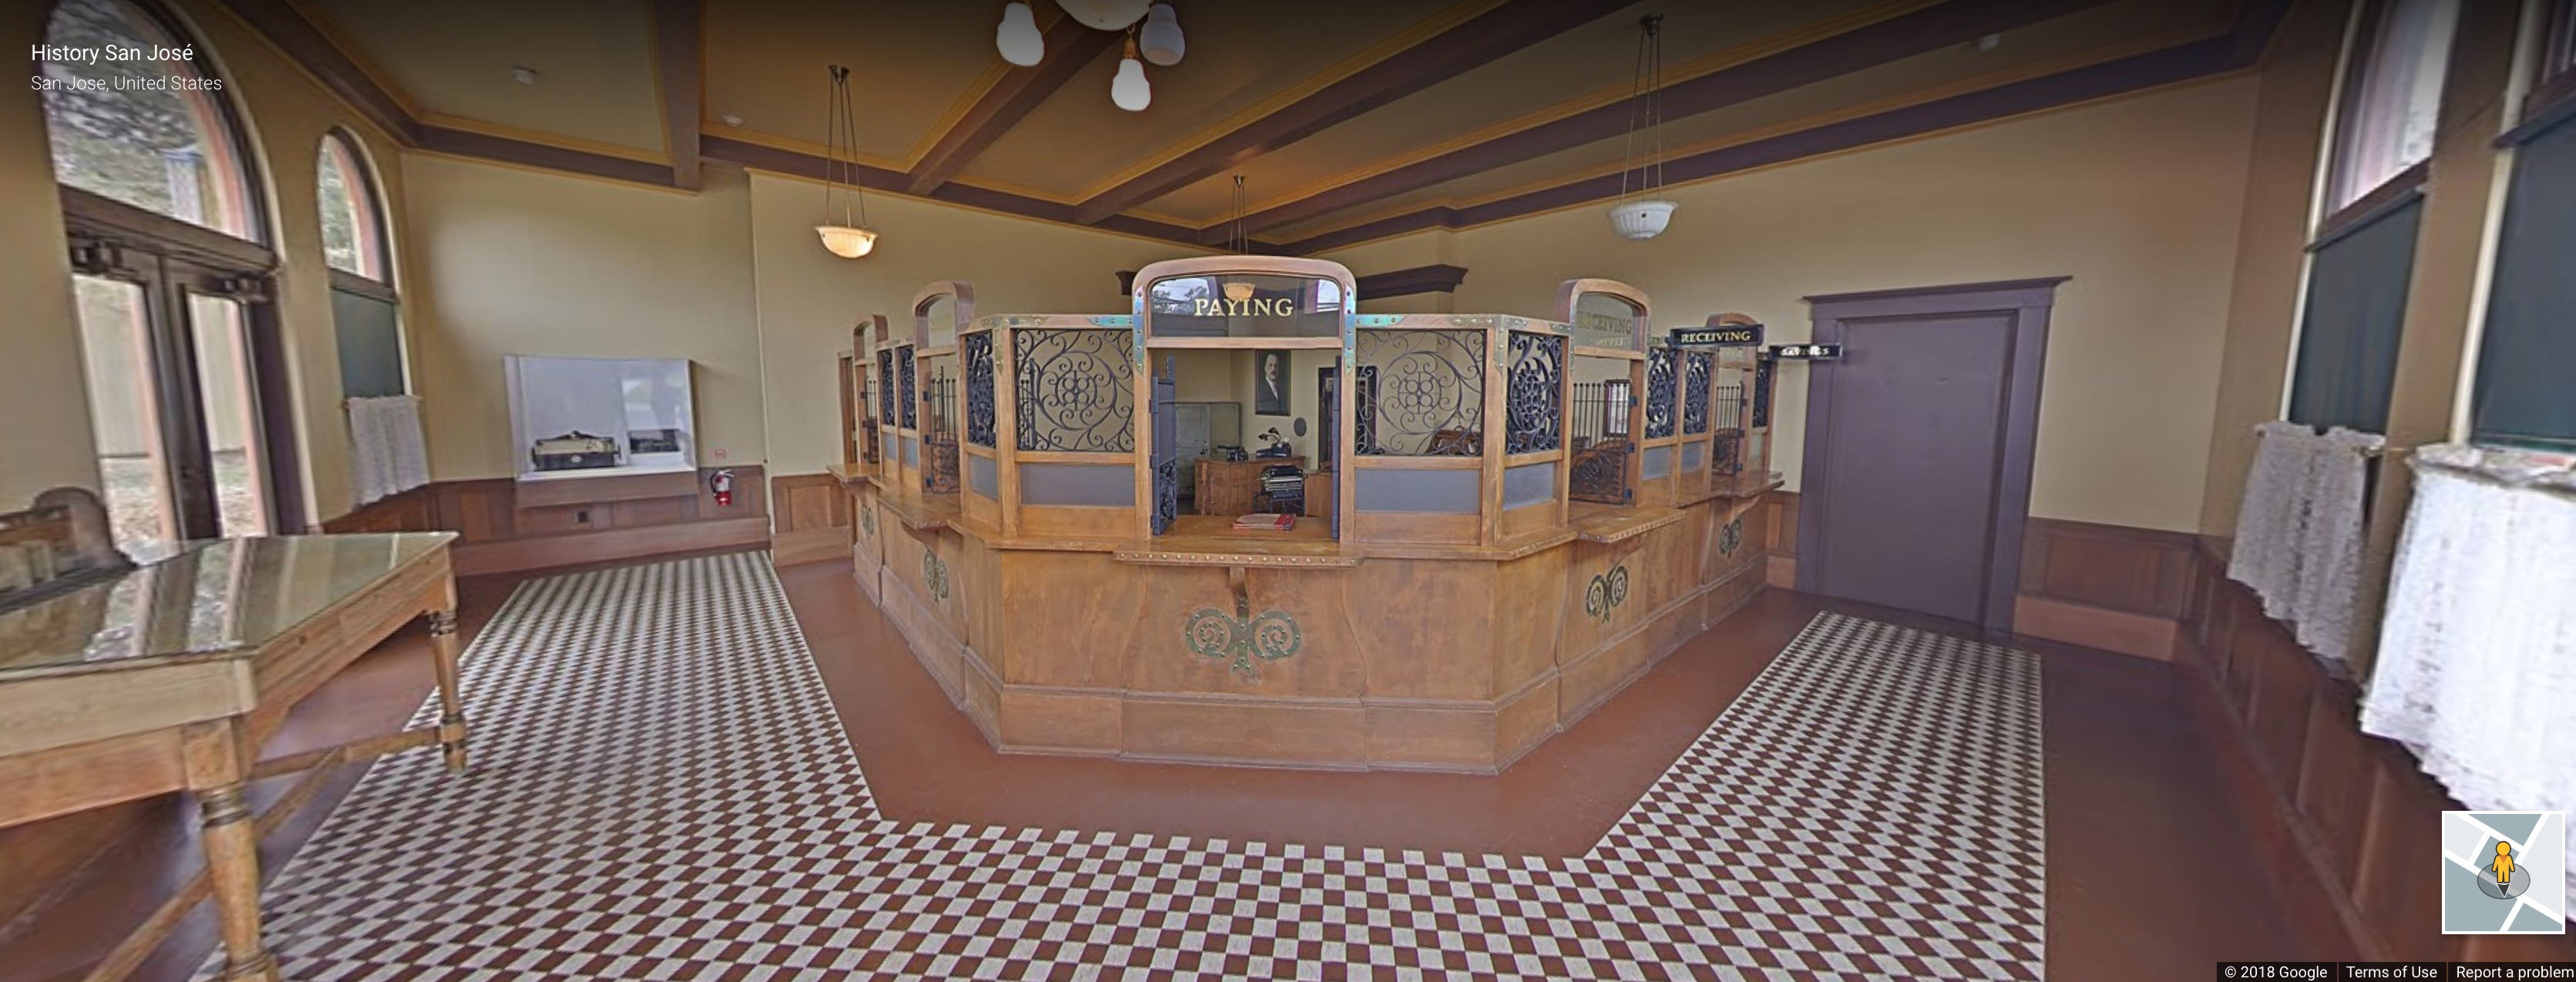 Inside a replica of an original Bank of Italy. Image credit: HistorySanJose